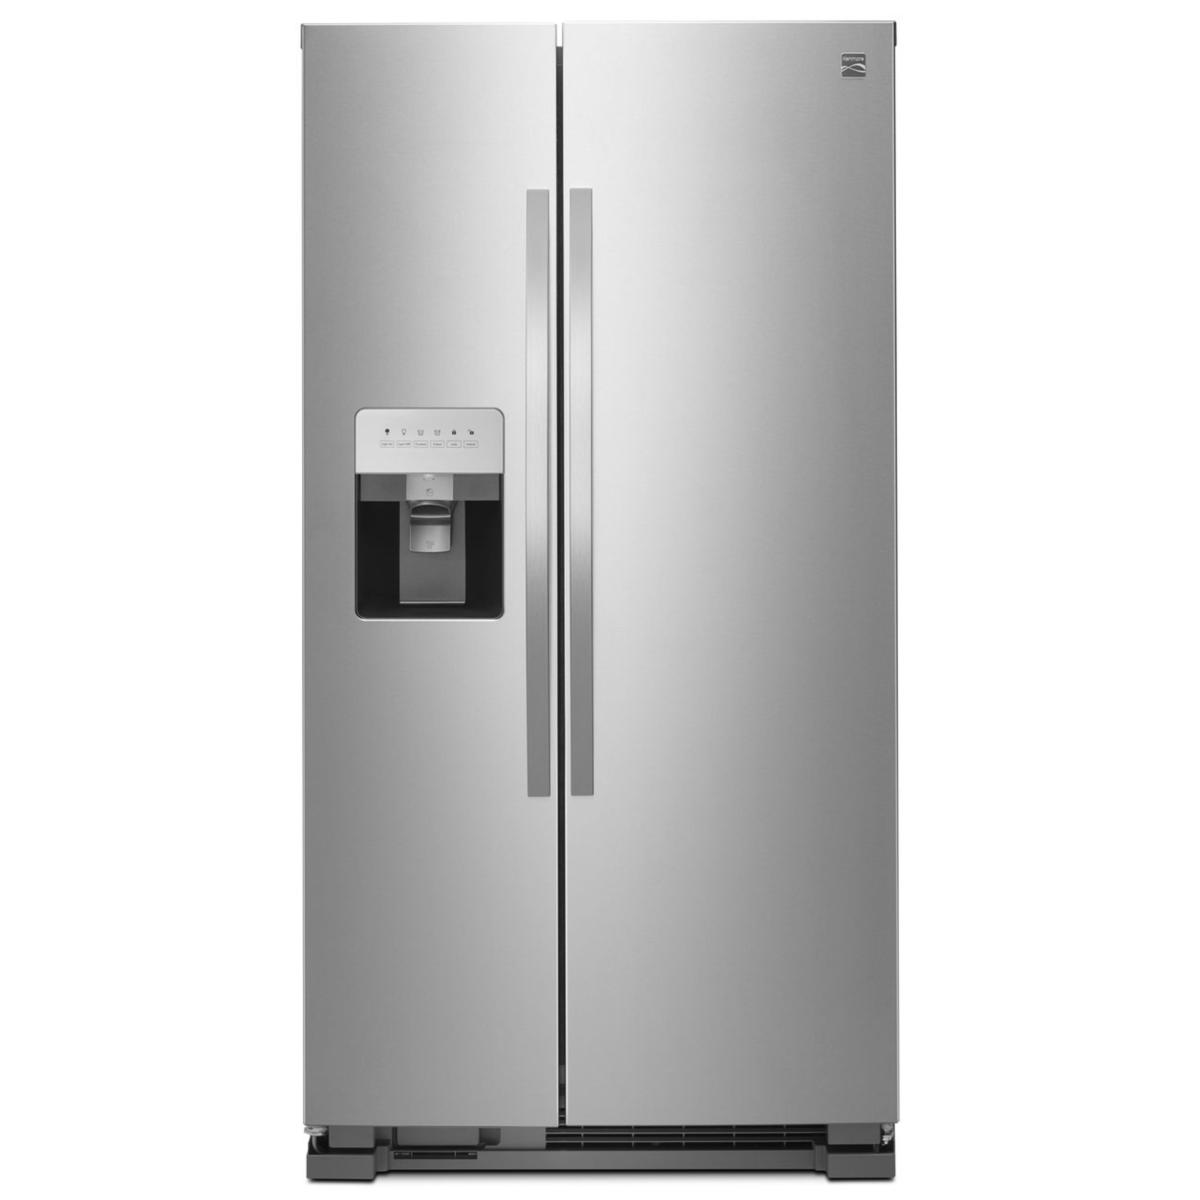 Kenmore 50045 25 cu. ft. Side-by-Side Fingerprint Resistant Refrigerator with Ice & Water Dispenser – Stainless Steel